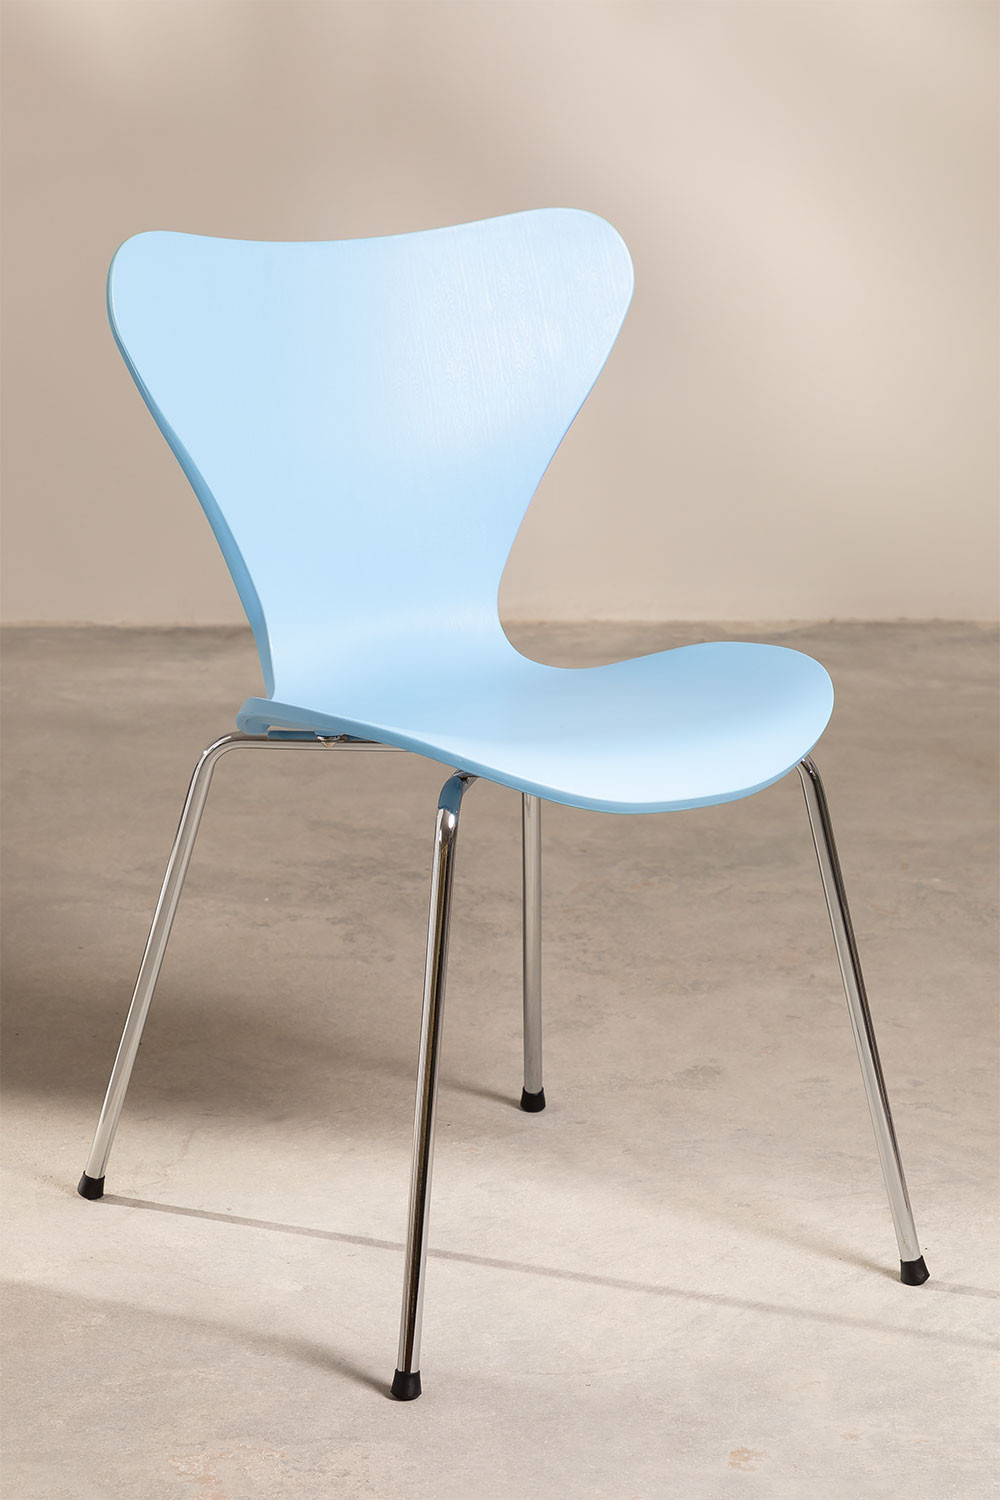 Silla Out, gallery image 1